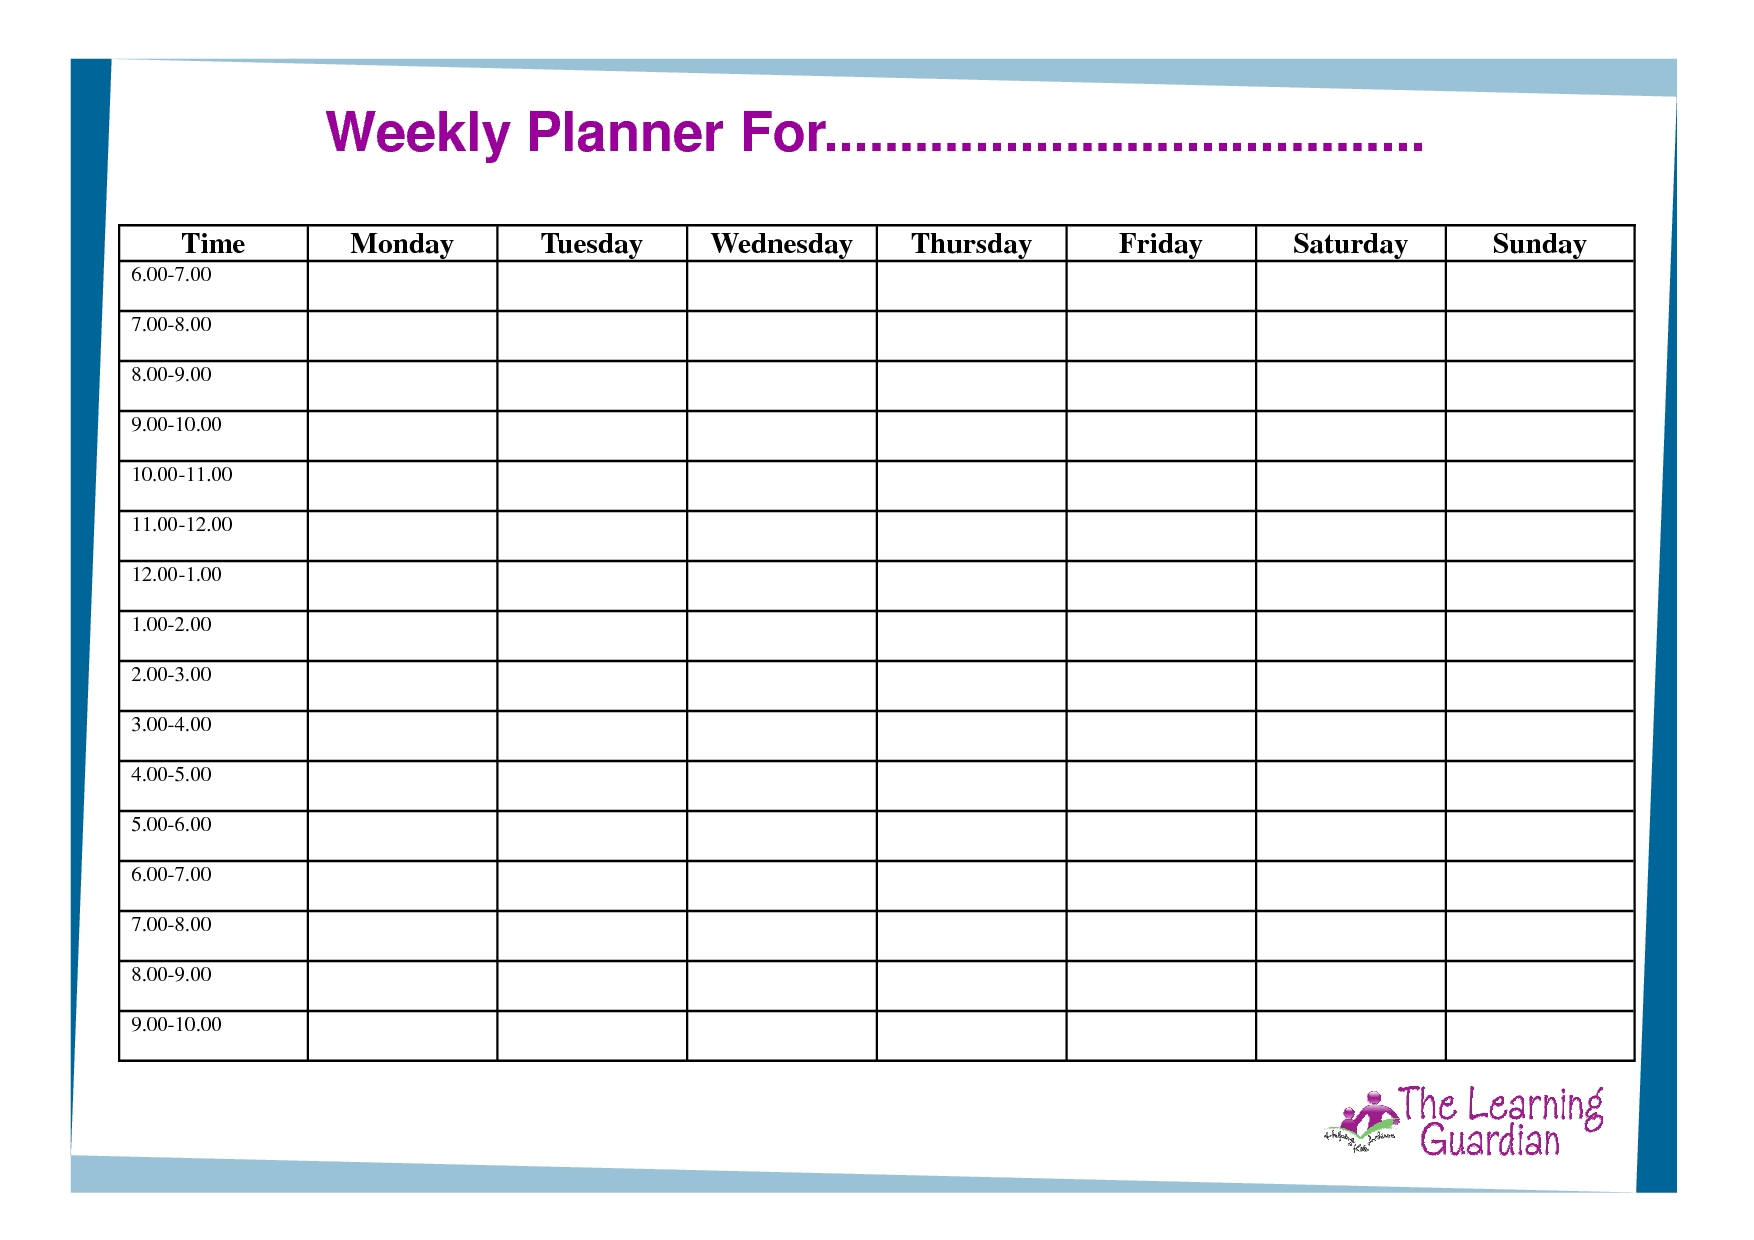 Free Printable Weekly Calendar Templates | Weekly Planner regarding Blank Weekly Calendays With Time